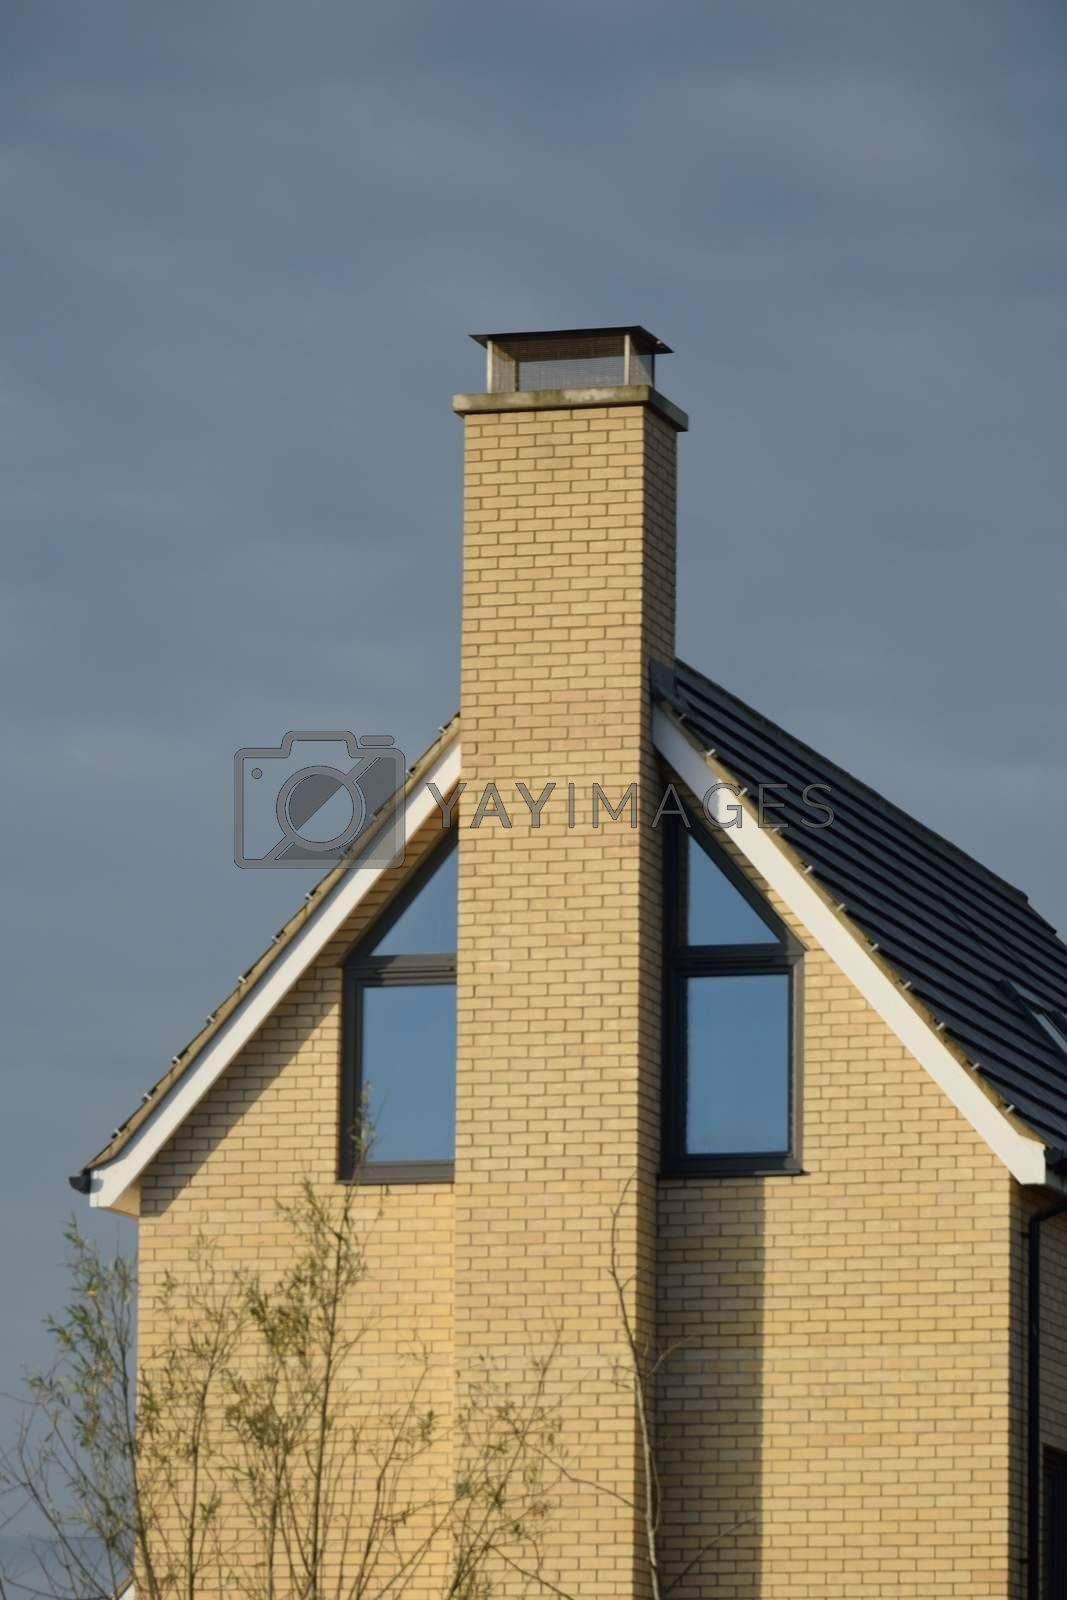 Modern English End of House with Chimney